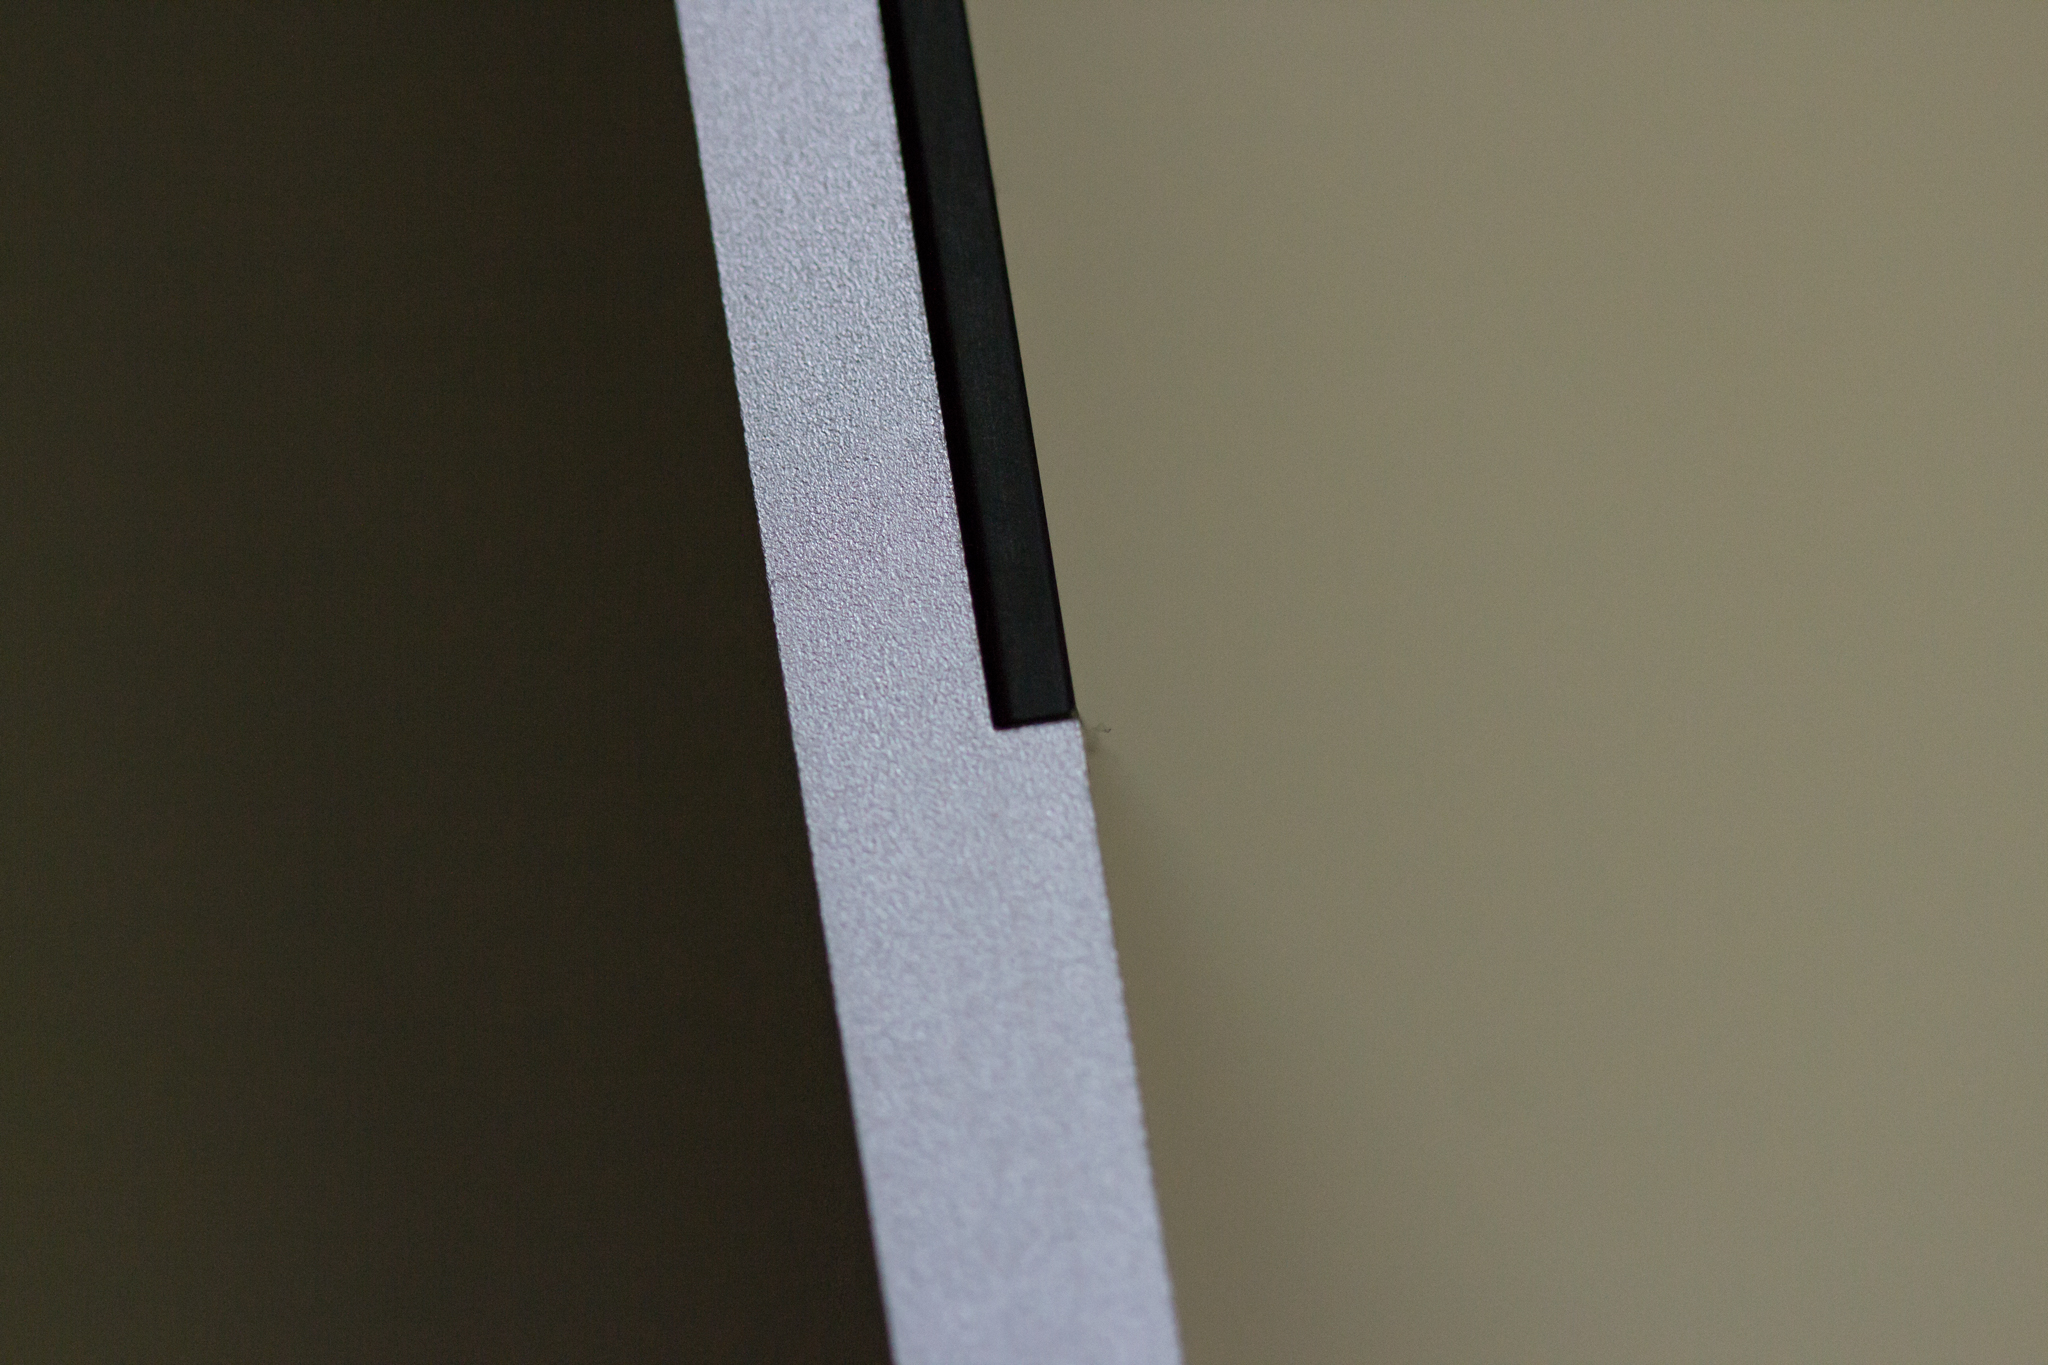 2012 iMac edge close-up